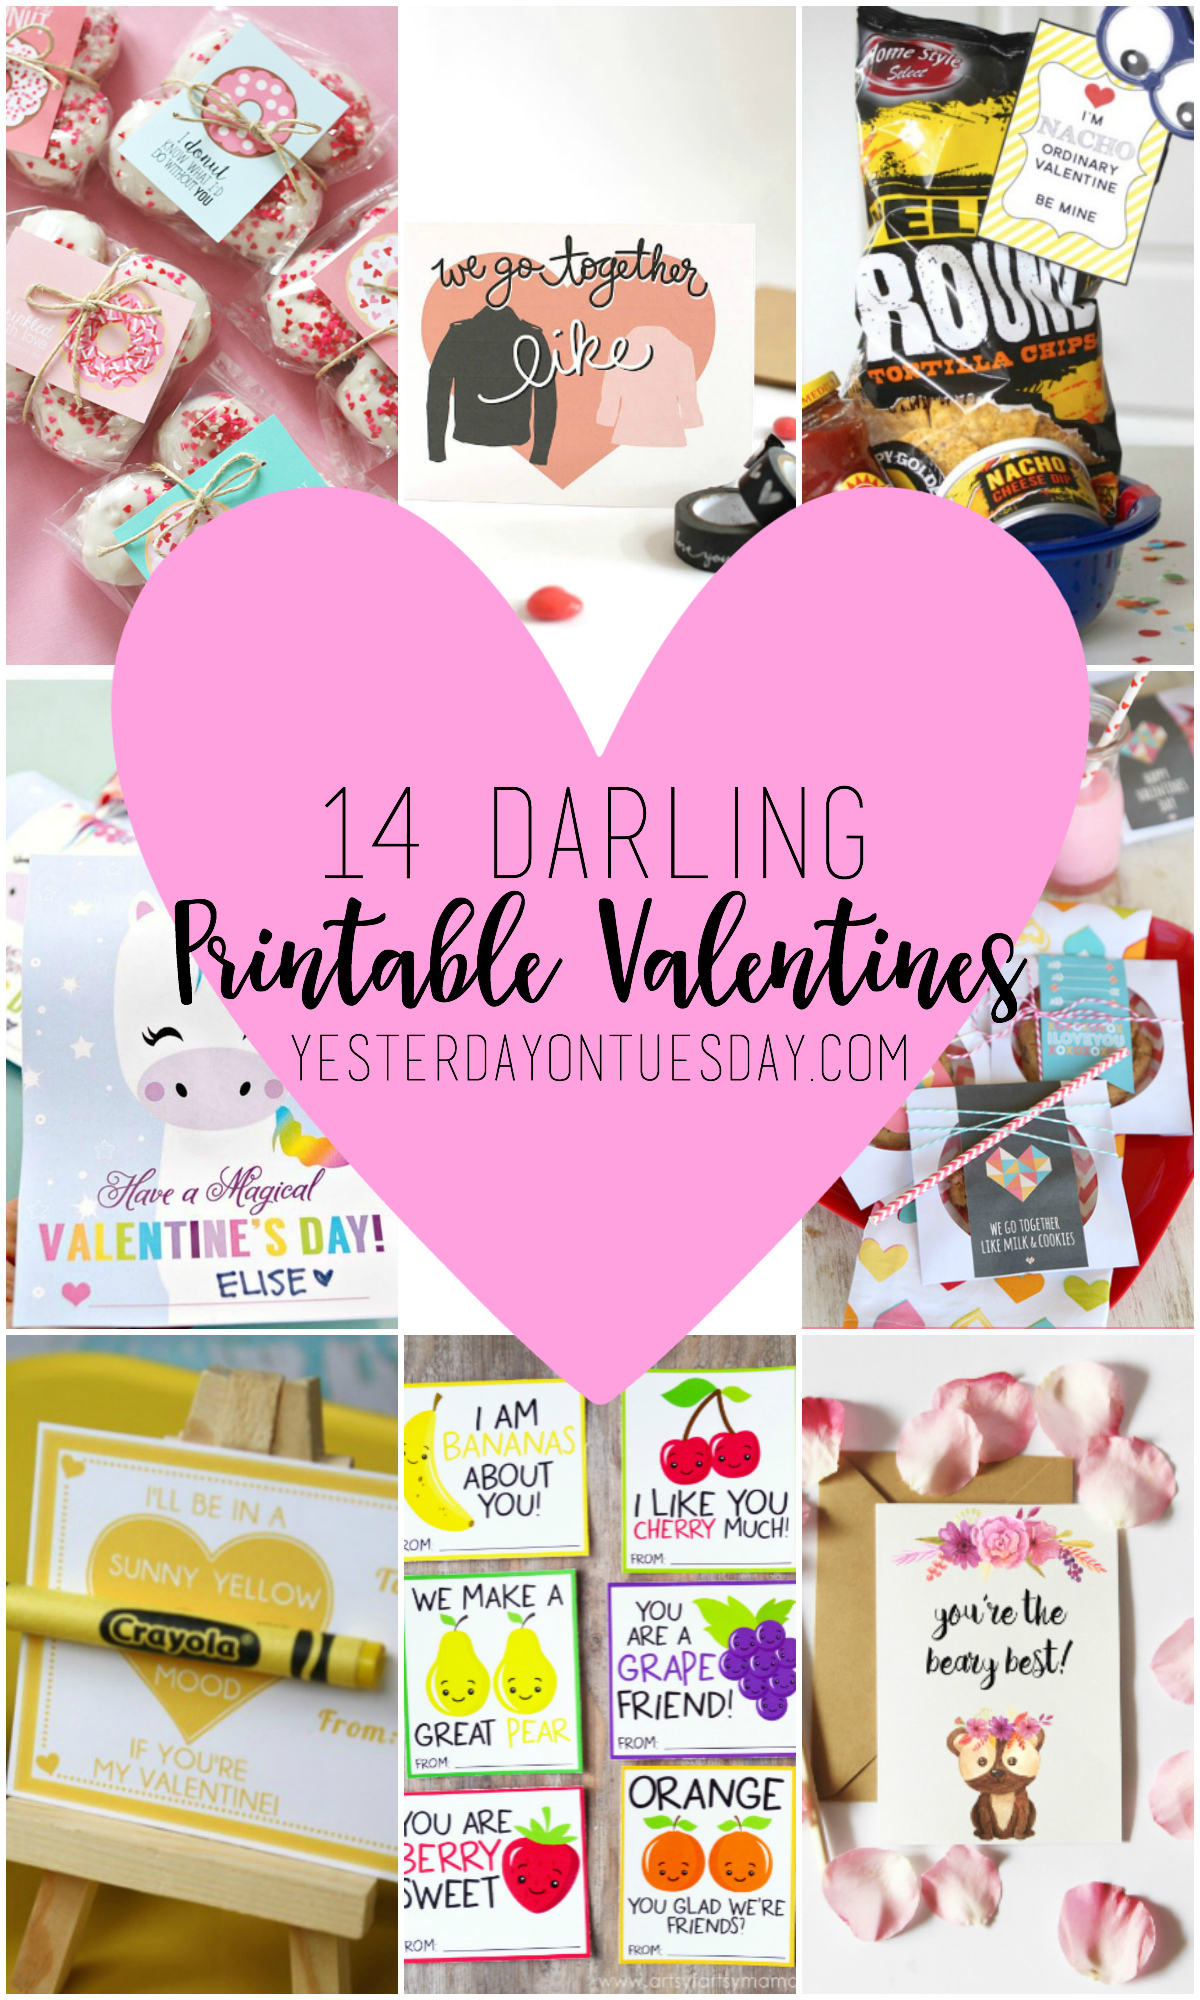 14 darling printable valentines yesterday on tuesday